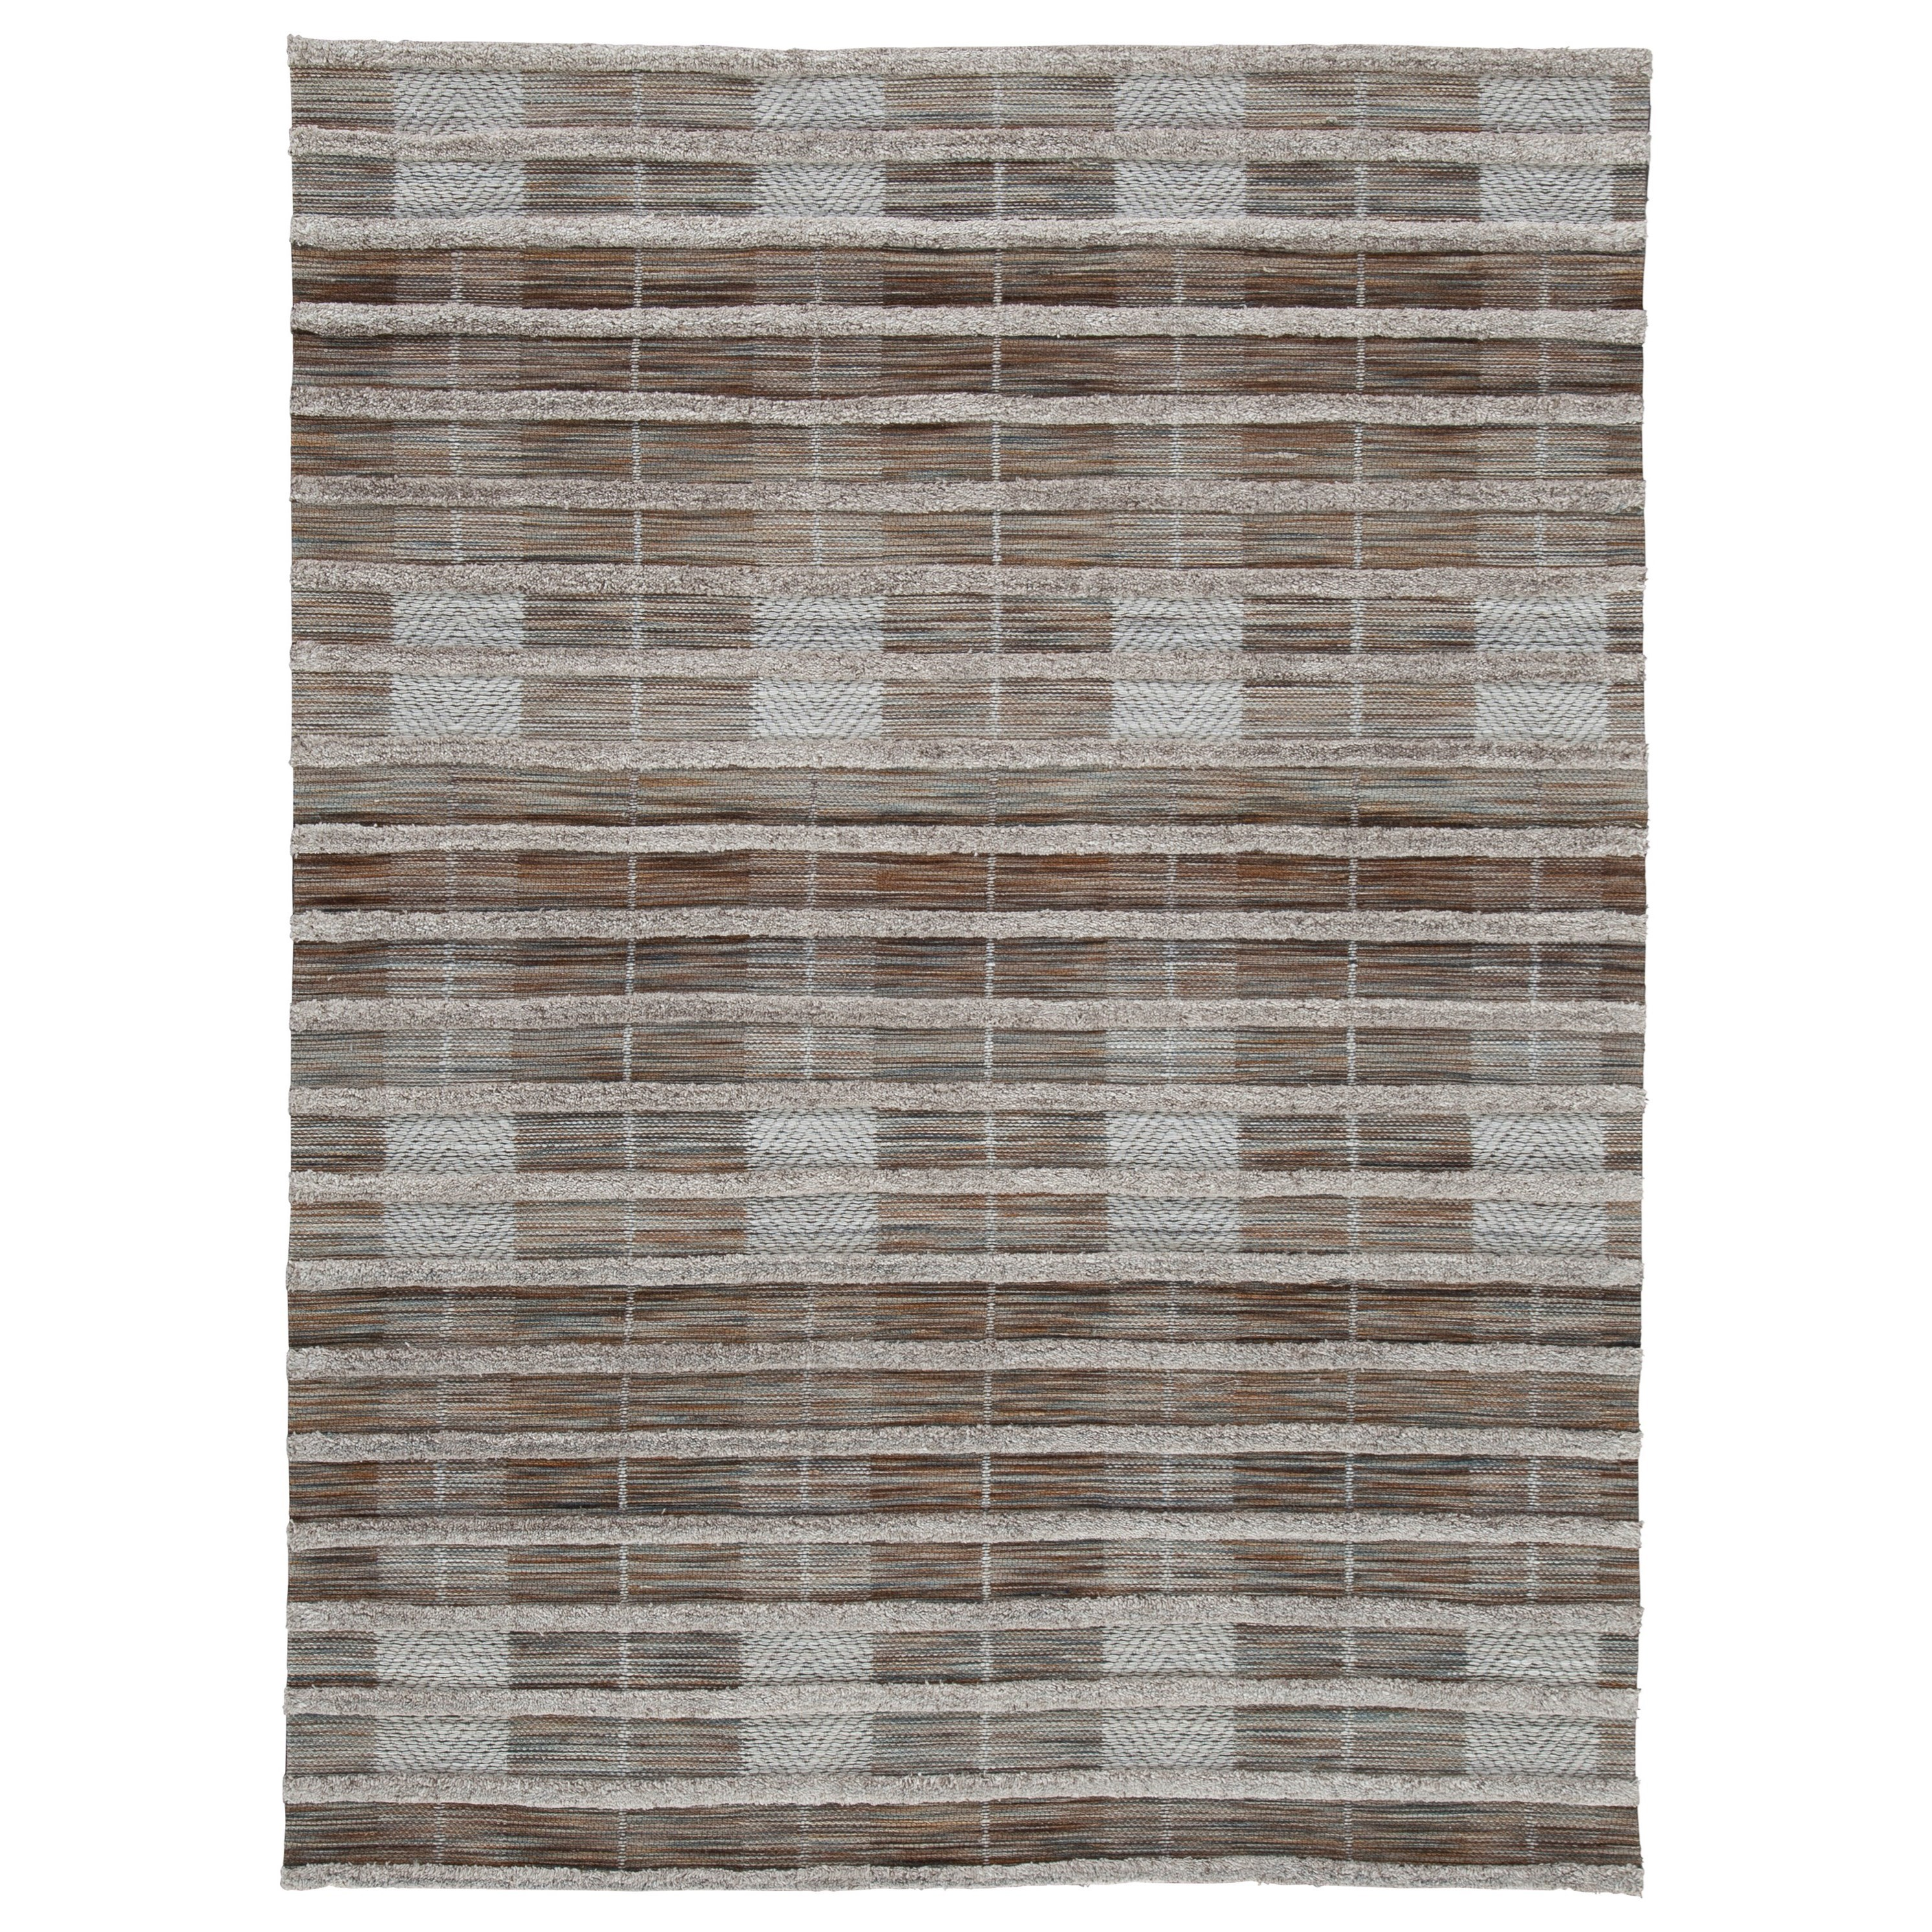 Casual Area Rugs Edrea Brown Medium Rug by Signature Design by Ashley at Northeast Factory Direct